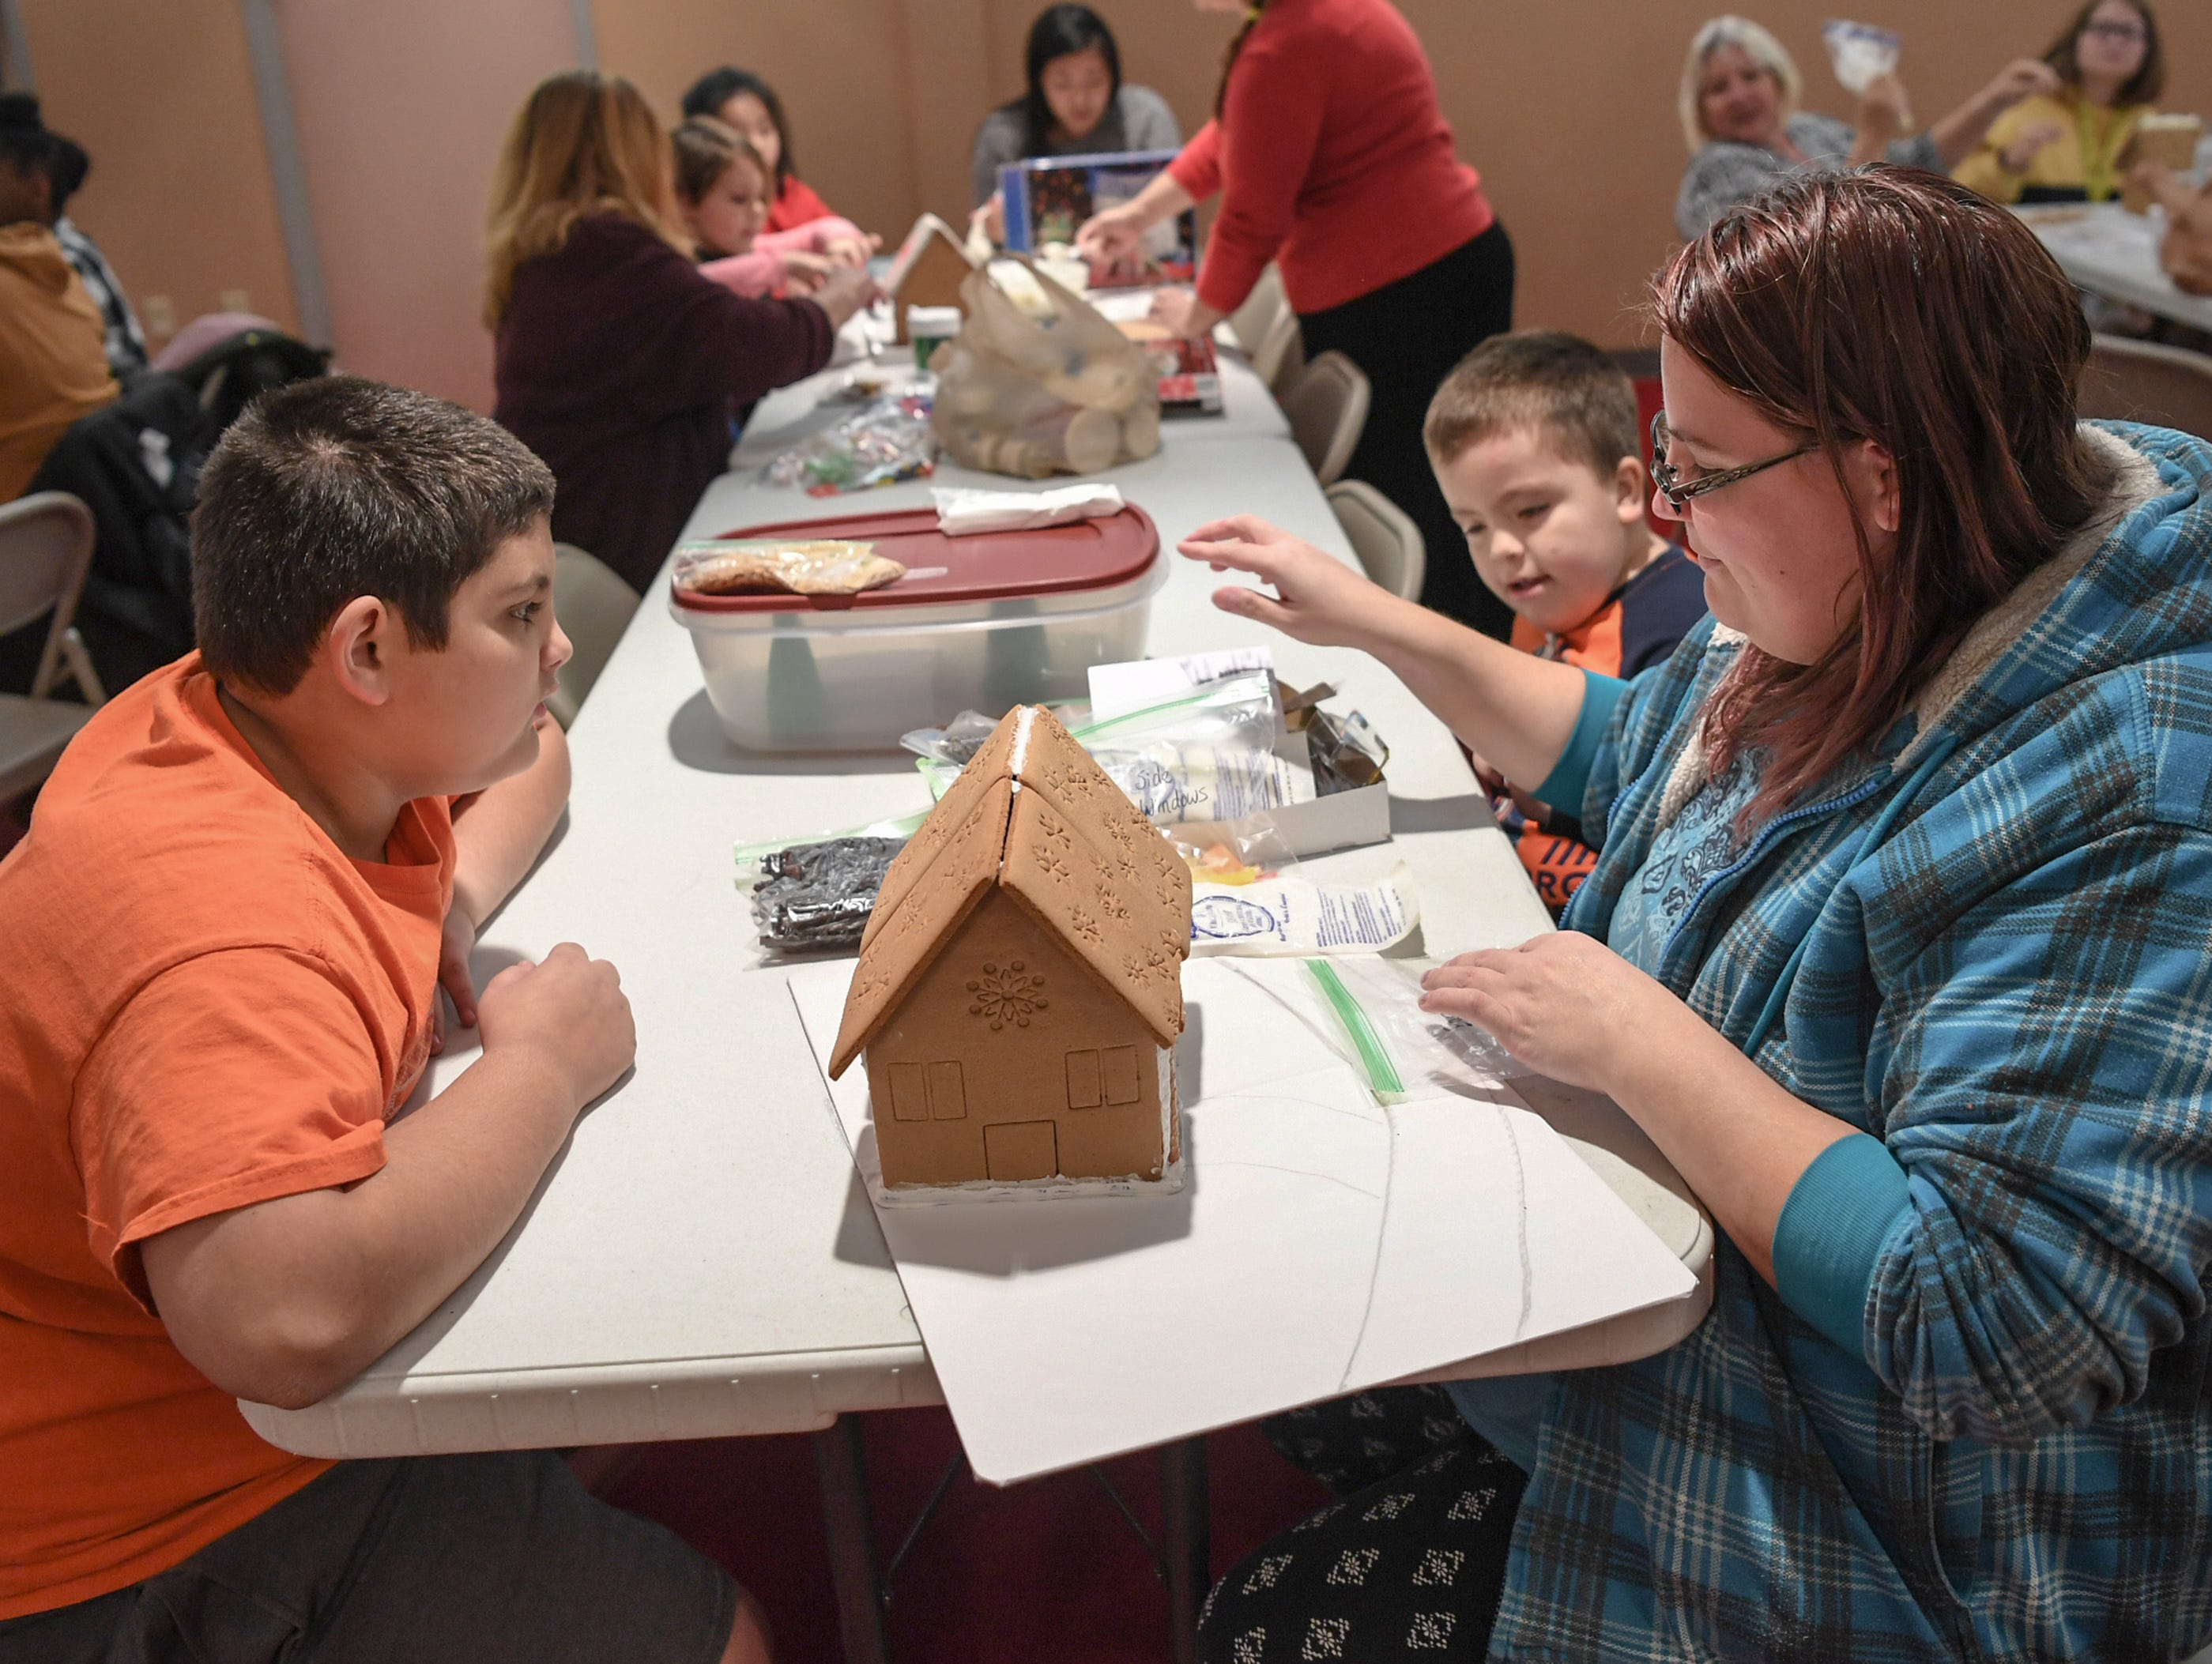 Rafael Martinez, left, and Doris Lehman make a gingerbread house in the shape of a train during the Big Brothers Big Sisters of the Upstate gingerbread house decorating party at the Anderson County Museum in Anderson on Tuesday.